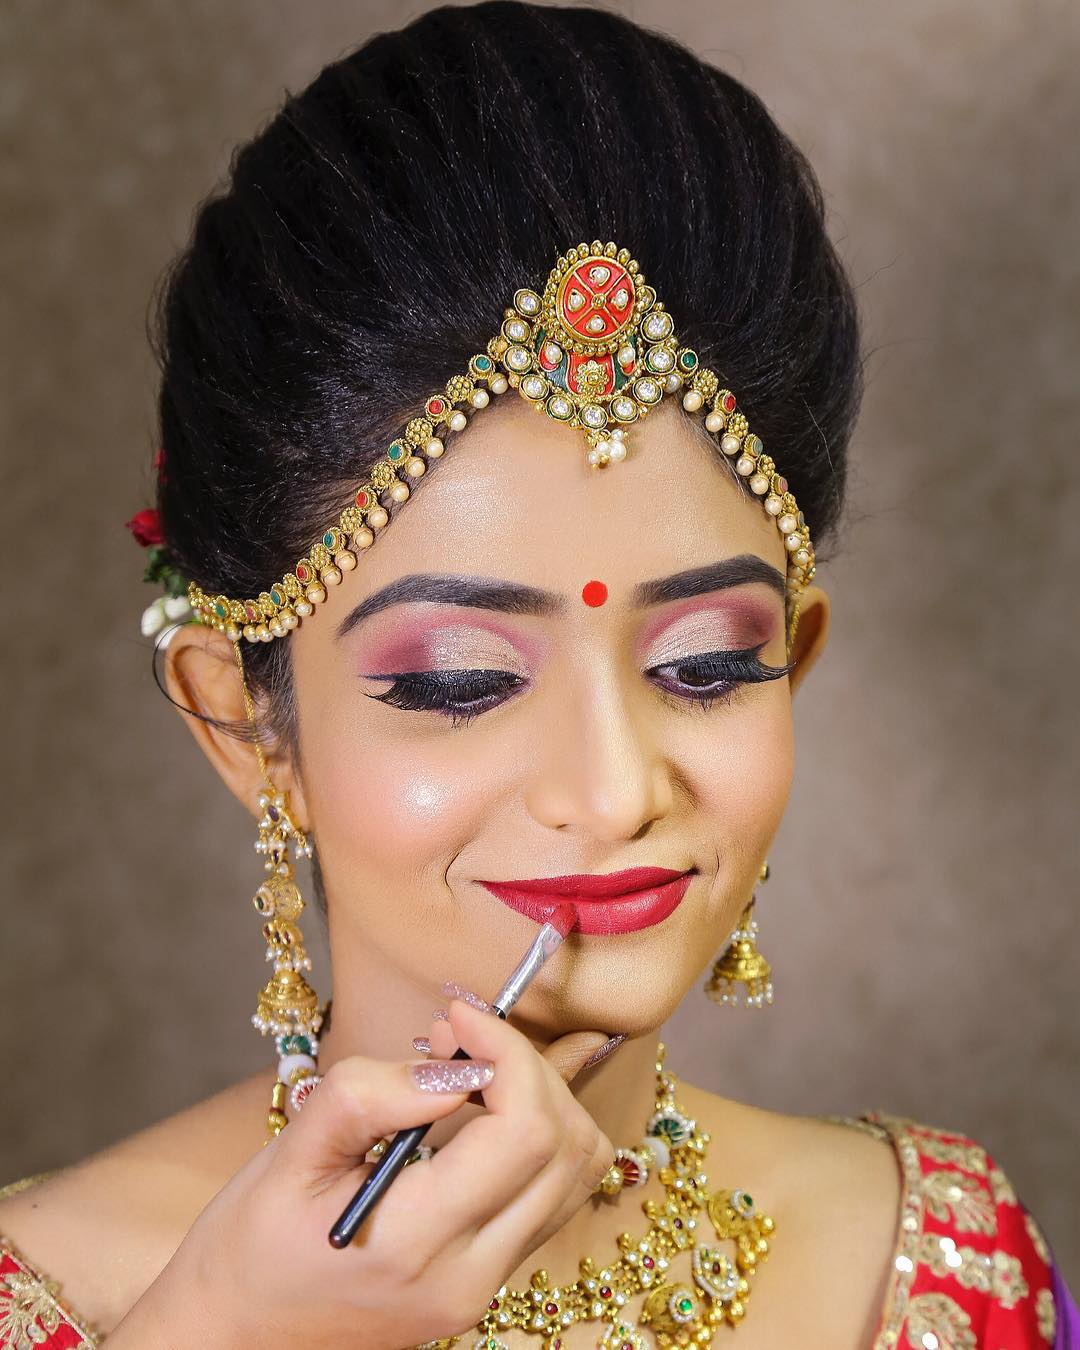 Classic red lips: Indian Bridal Makeup Look in Celeb Style